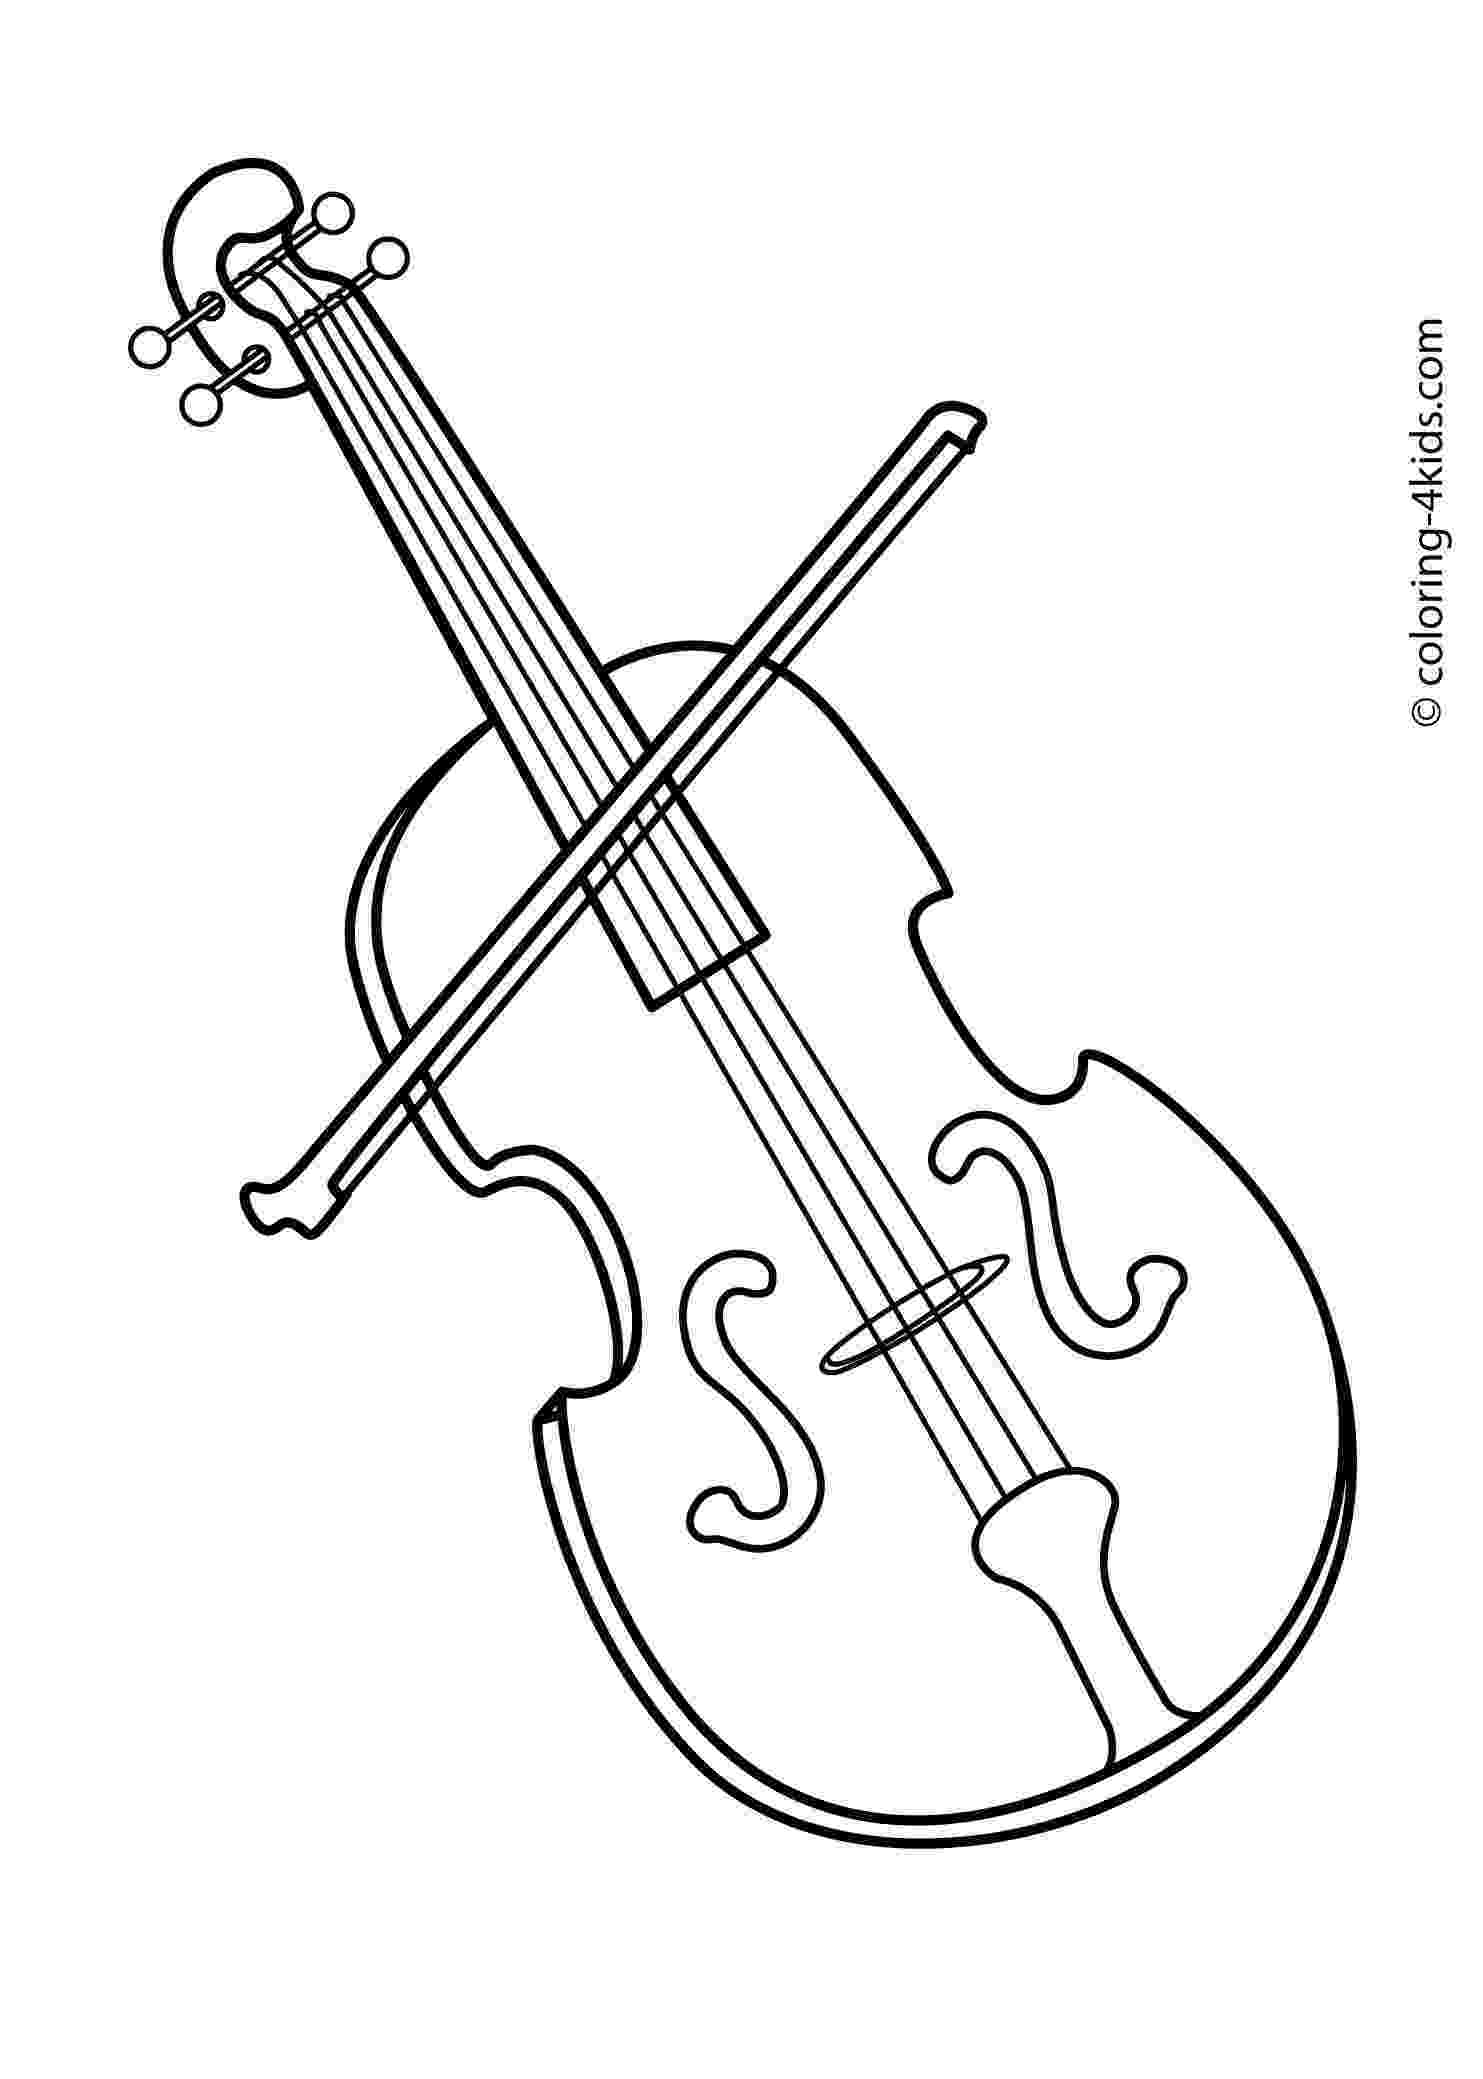 colouring pages of musical instruments musical instruments coloring pages 11 jazz pinterest pages instruments musical colouring of